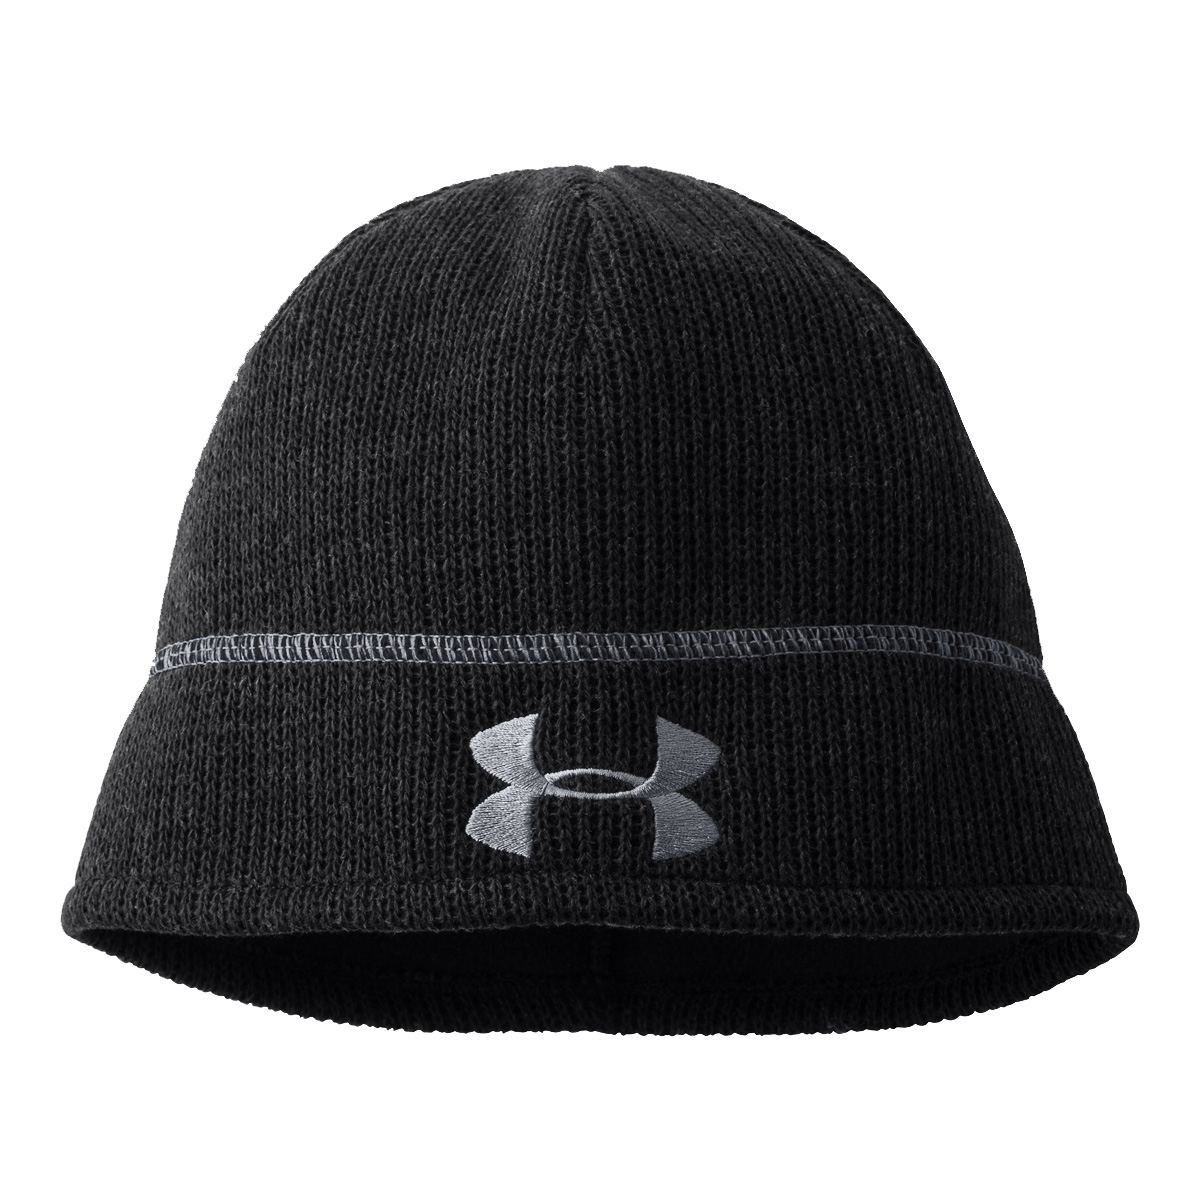 Image of Under Armour Watchman Beanie - Black   Steel 05eb6ffdc0b